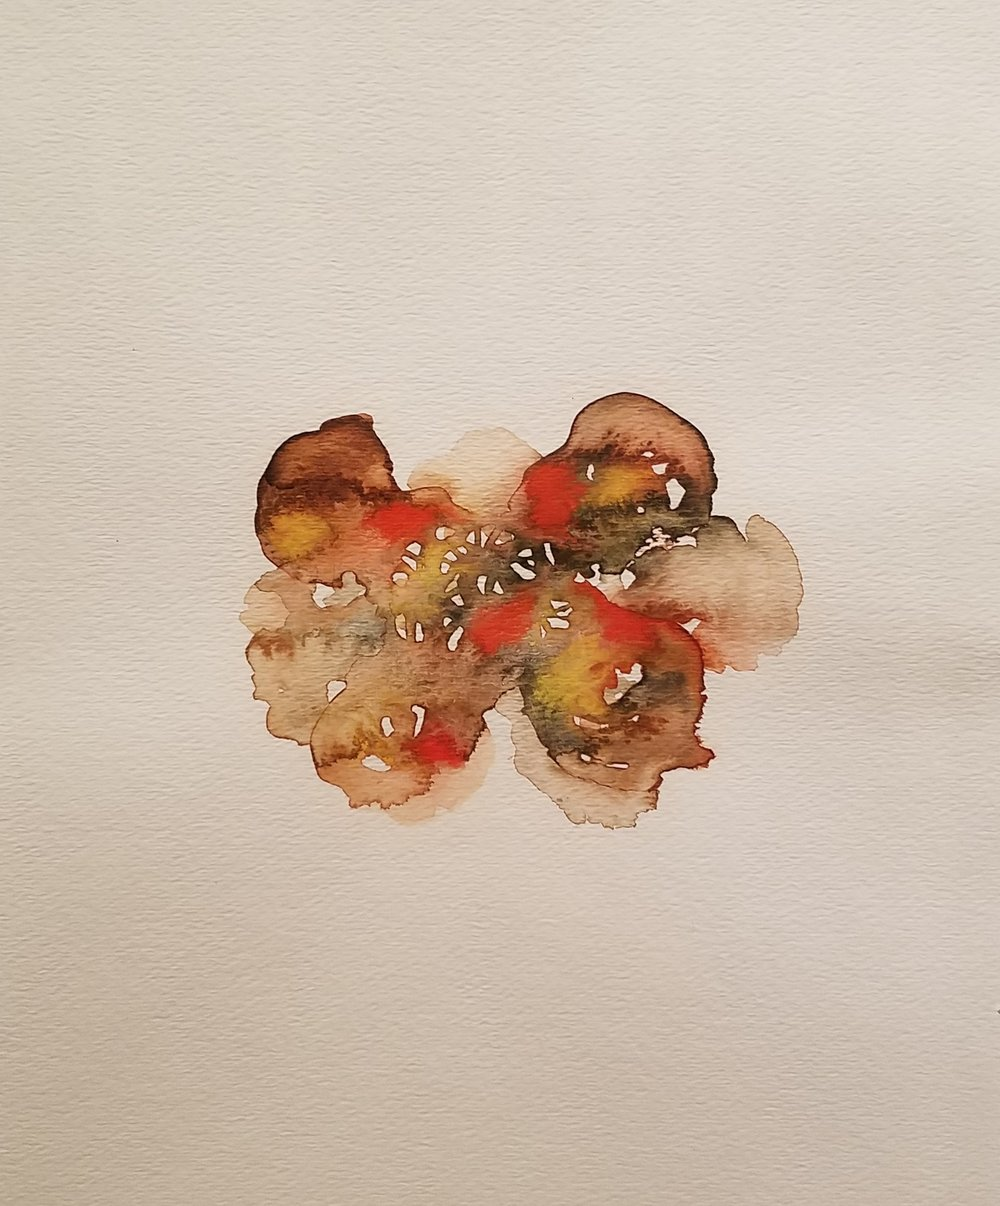 David Liss,  Untitled Watercolour #3 , 2014-2016, watercolour on paper, 24.75 x 21.75 inches,  (inquire)